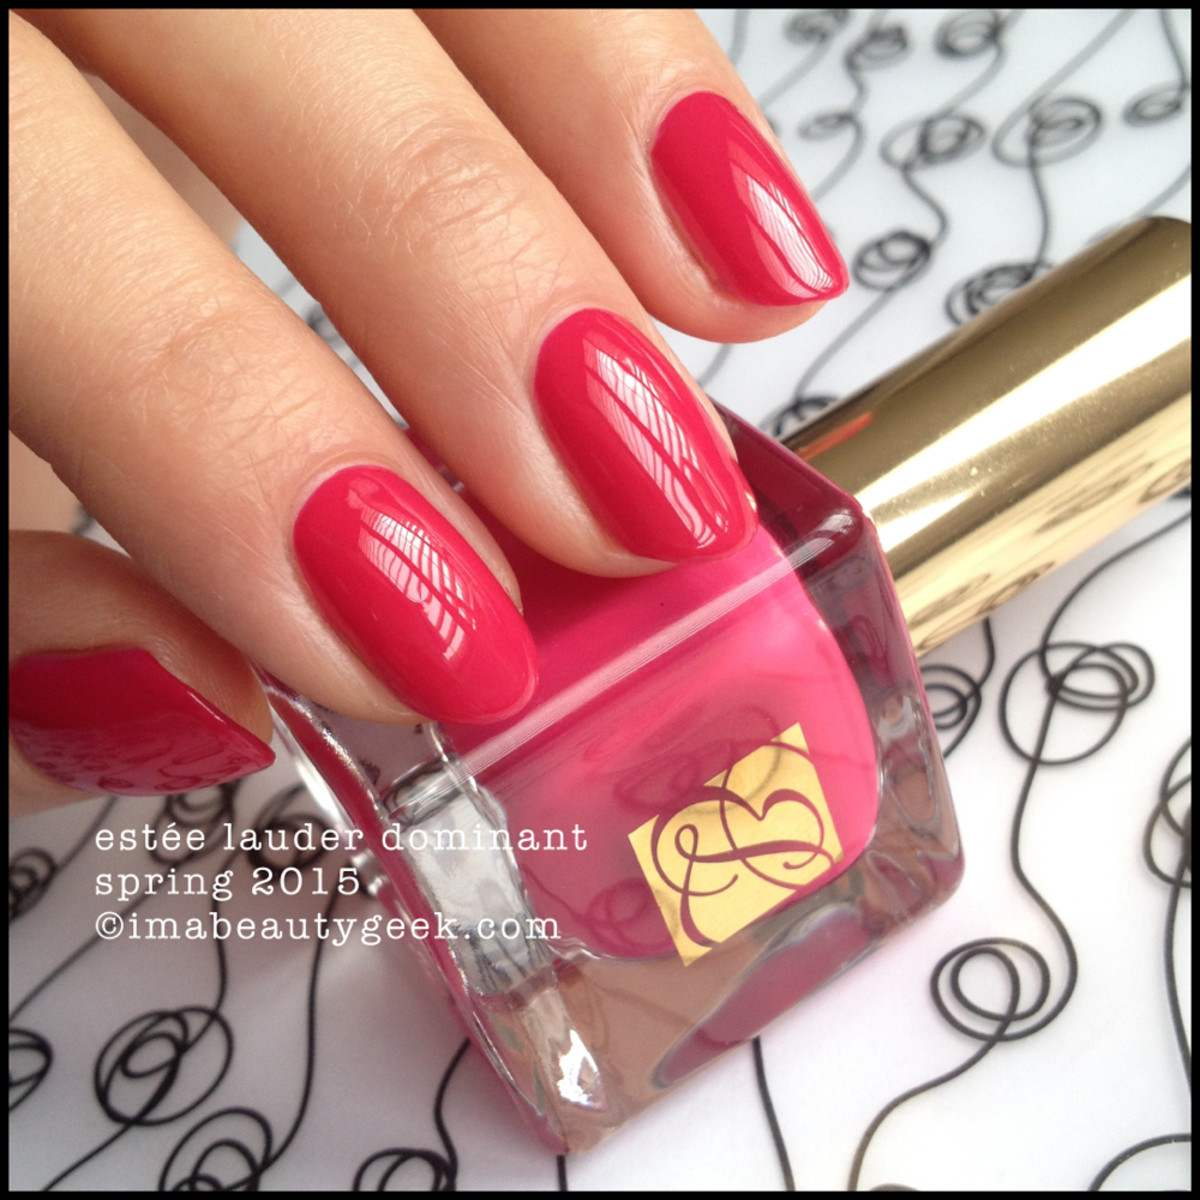 ESTEE LAUDER DOMINANT PURE COLOR NAIL ENVY #NOTD - Beautygeeks